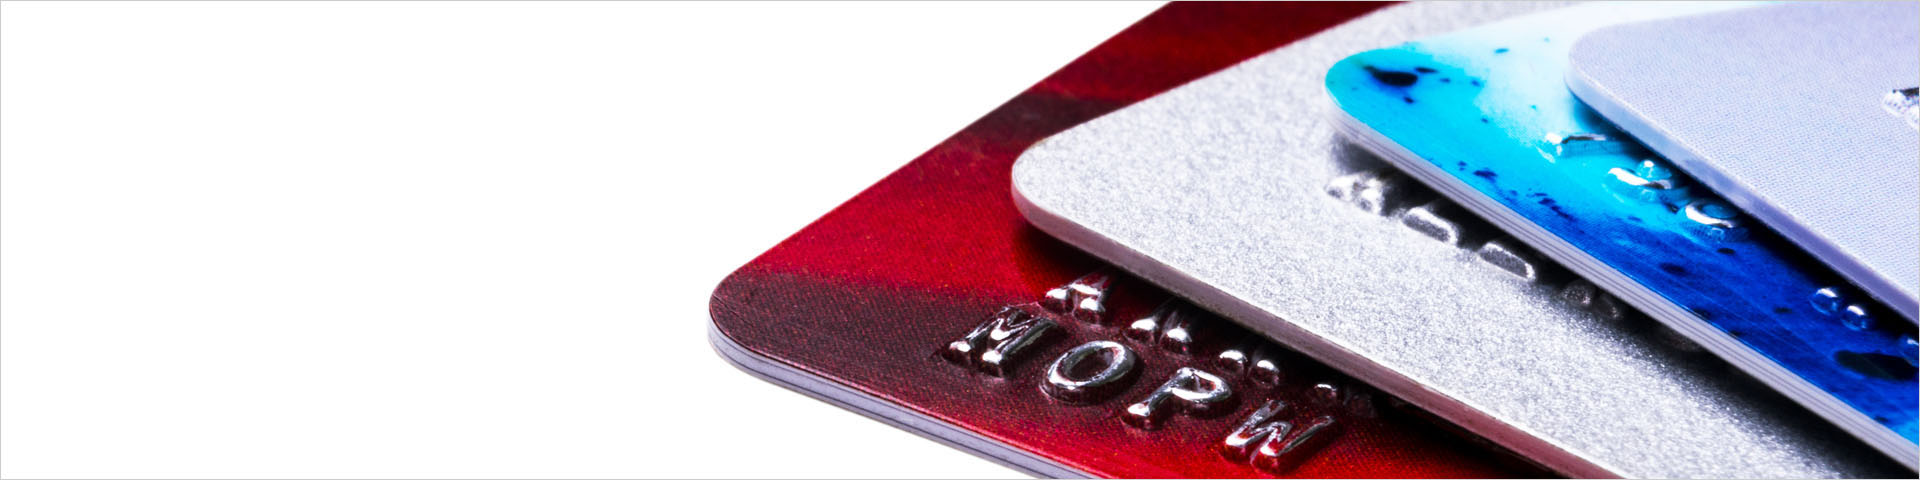 Credit Cards - Thumb Bank